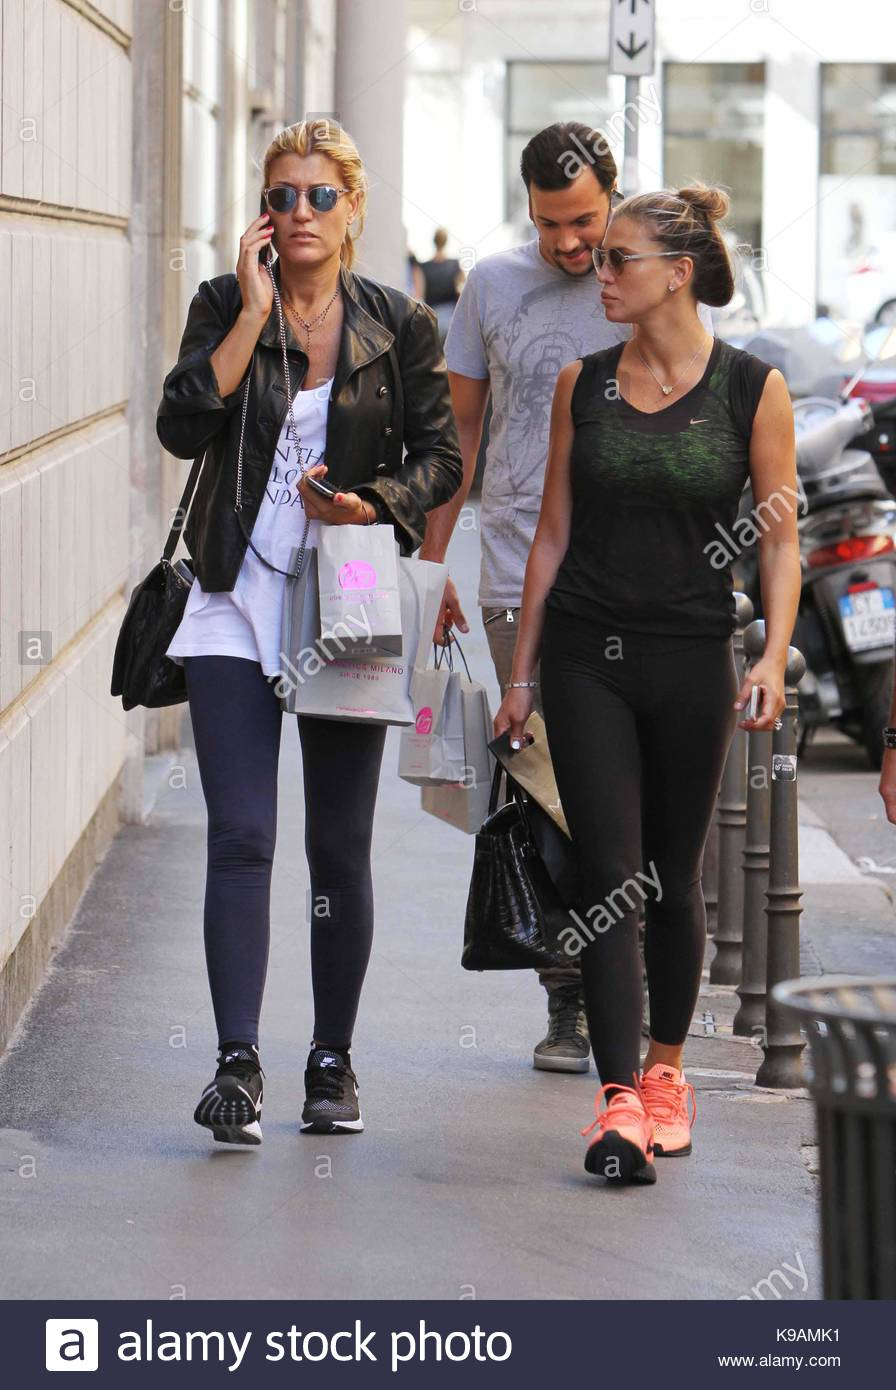 Favorito Claudia Galanti And Raffaella Zardo Stock Photos & Claudia Galanti  IV39